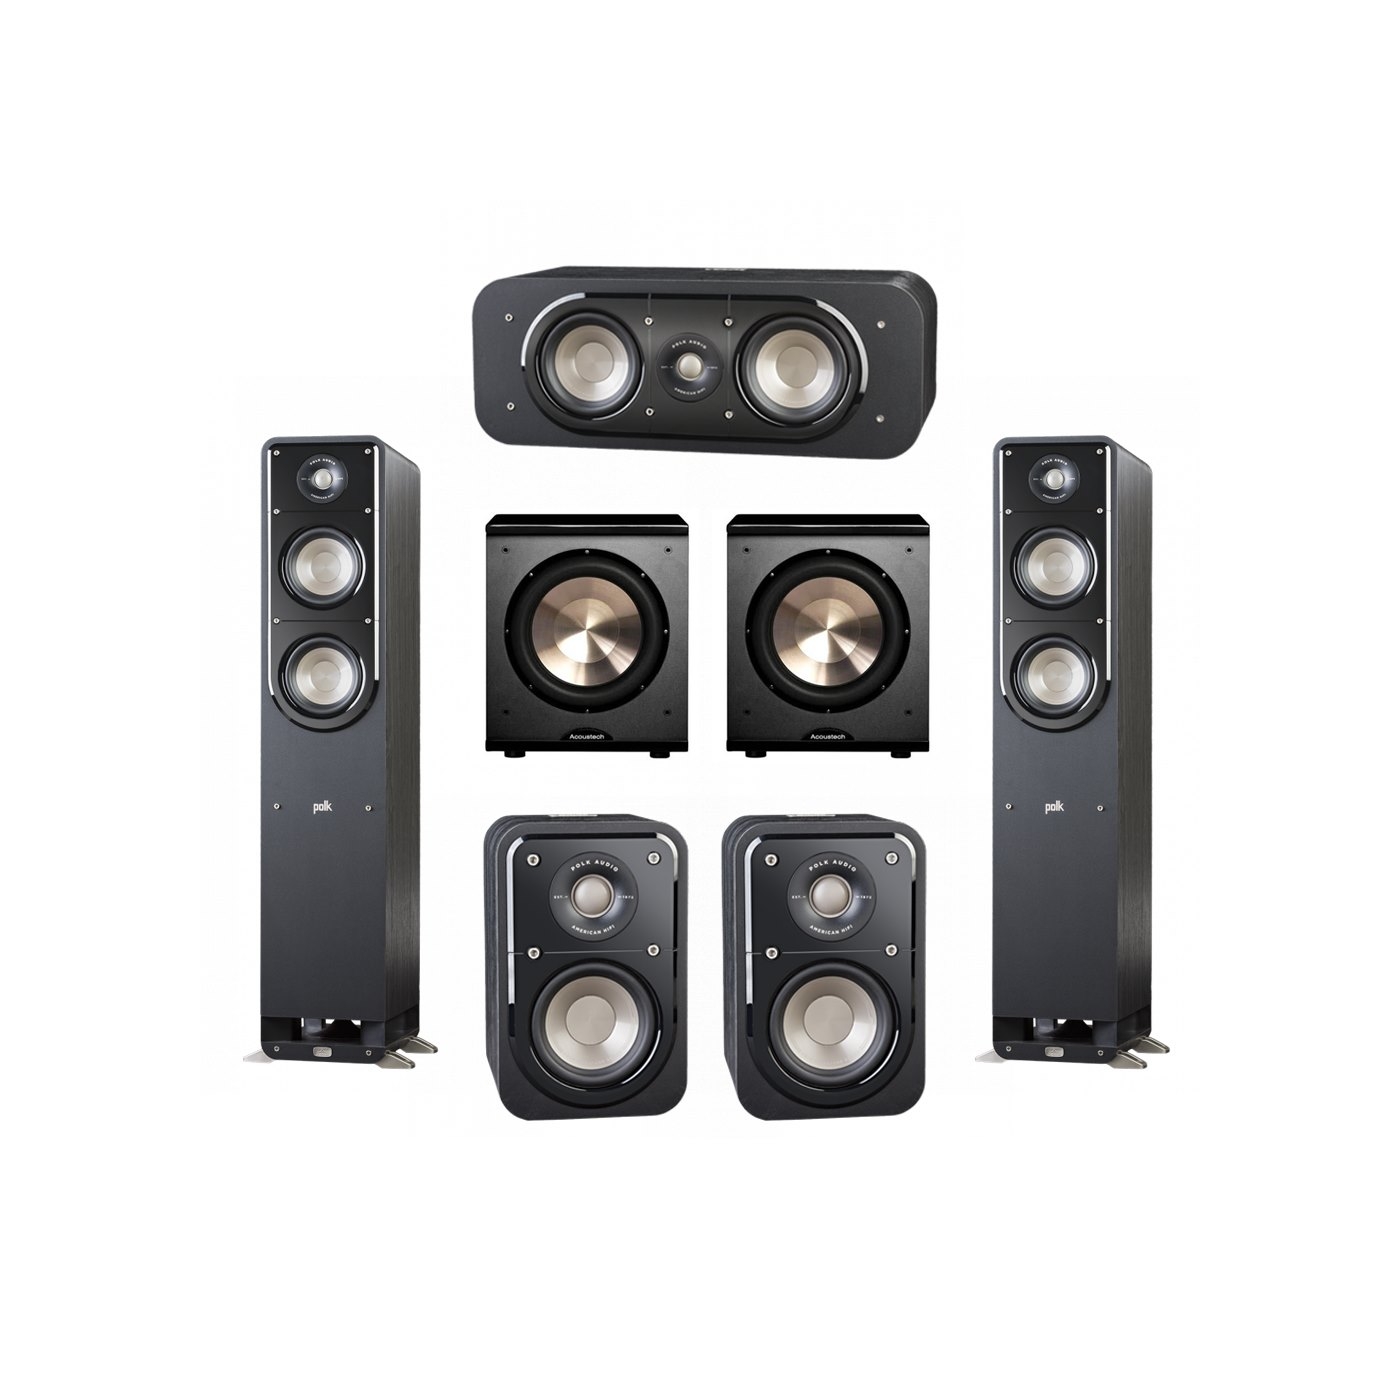 Polk Audio Signature 5.2 System with 2 S50 Tower Speaker, 1 Polk S35 Center Speaker, 2 Polk S10 Surround Speaker, 2 BIC/Acoustech Platinum Series PL-200 Subwoofer